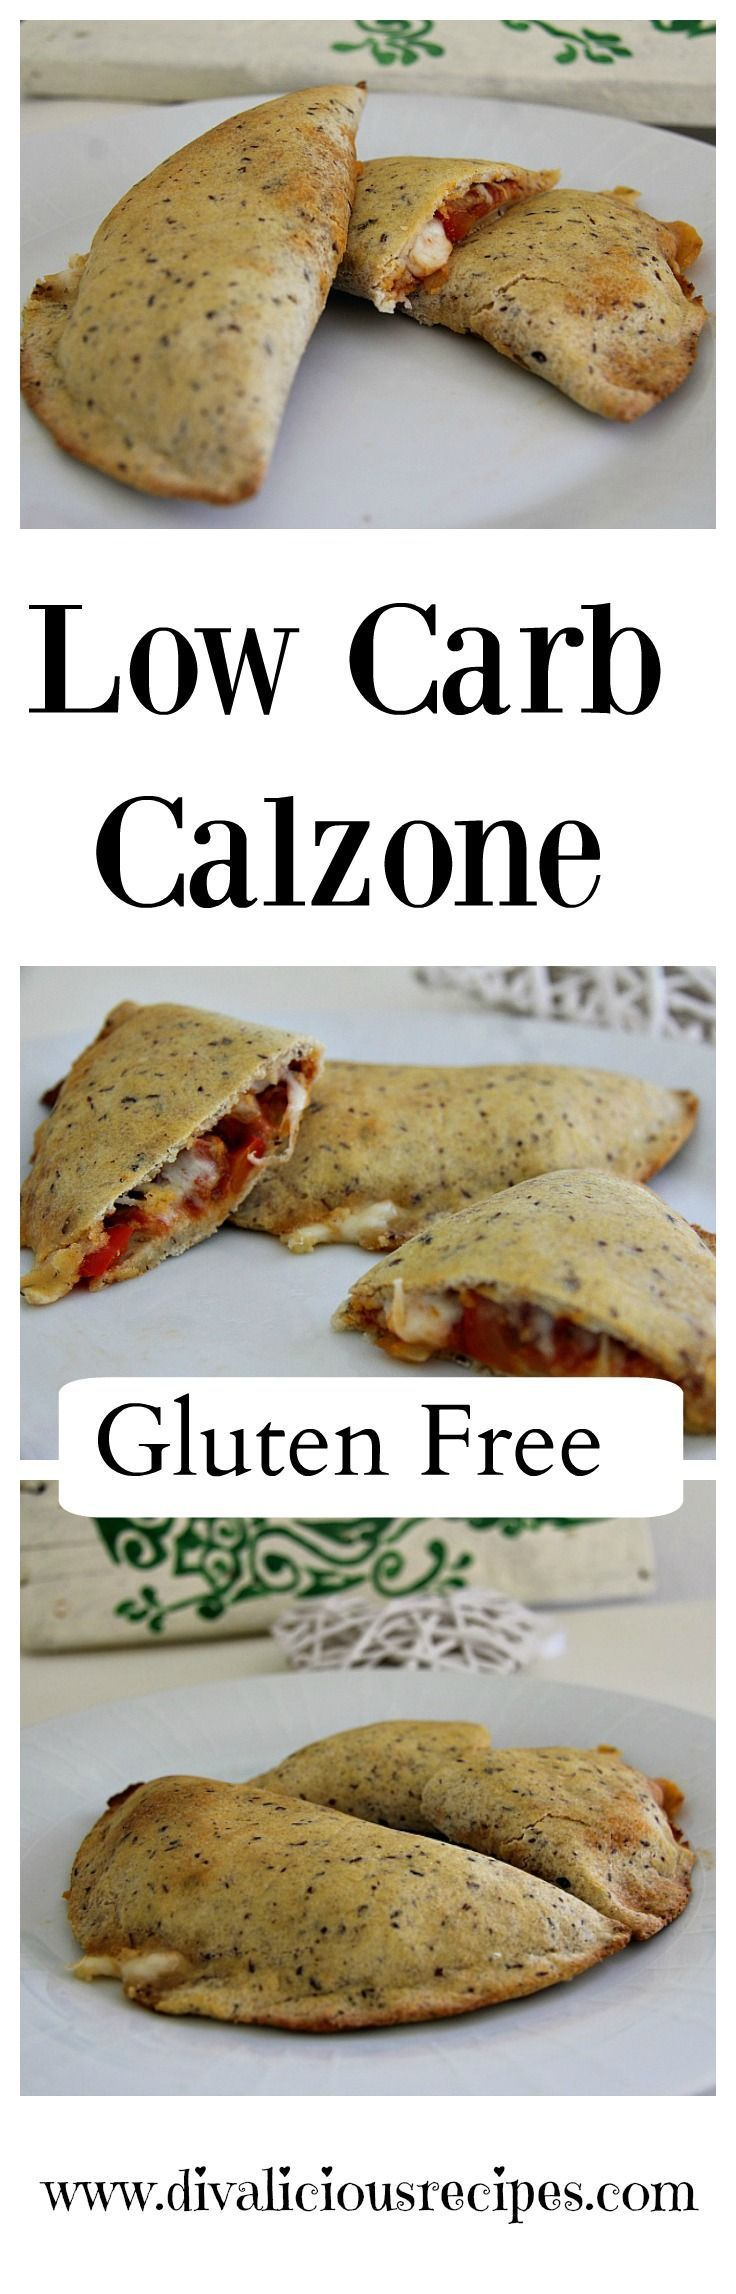 A low carb calzone dough recipe that is easy to make and a healthier option. Made with coconut flour and psyllium husk powder this is gluten free too.